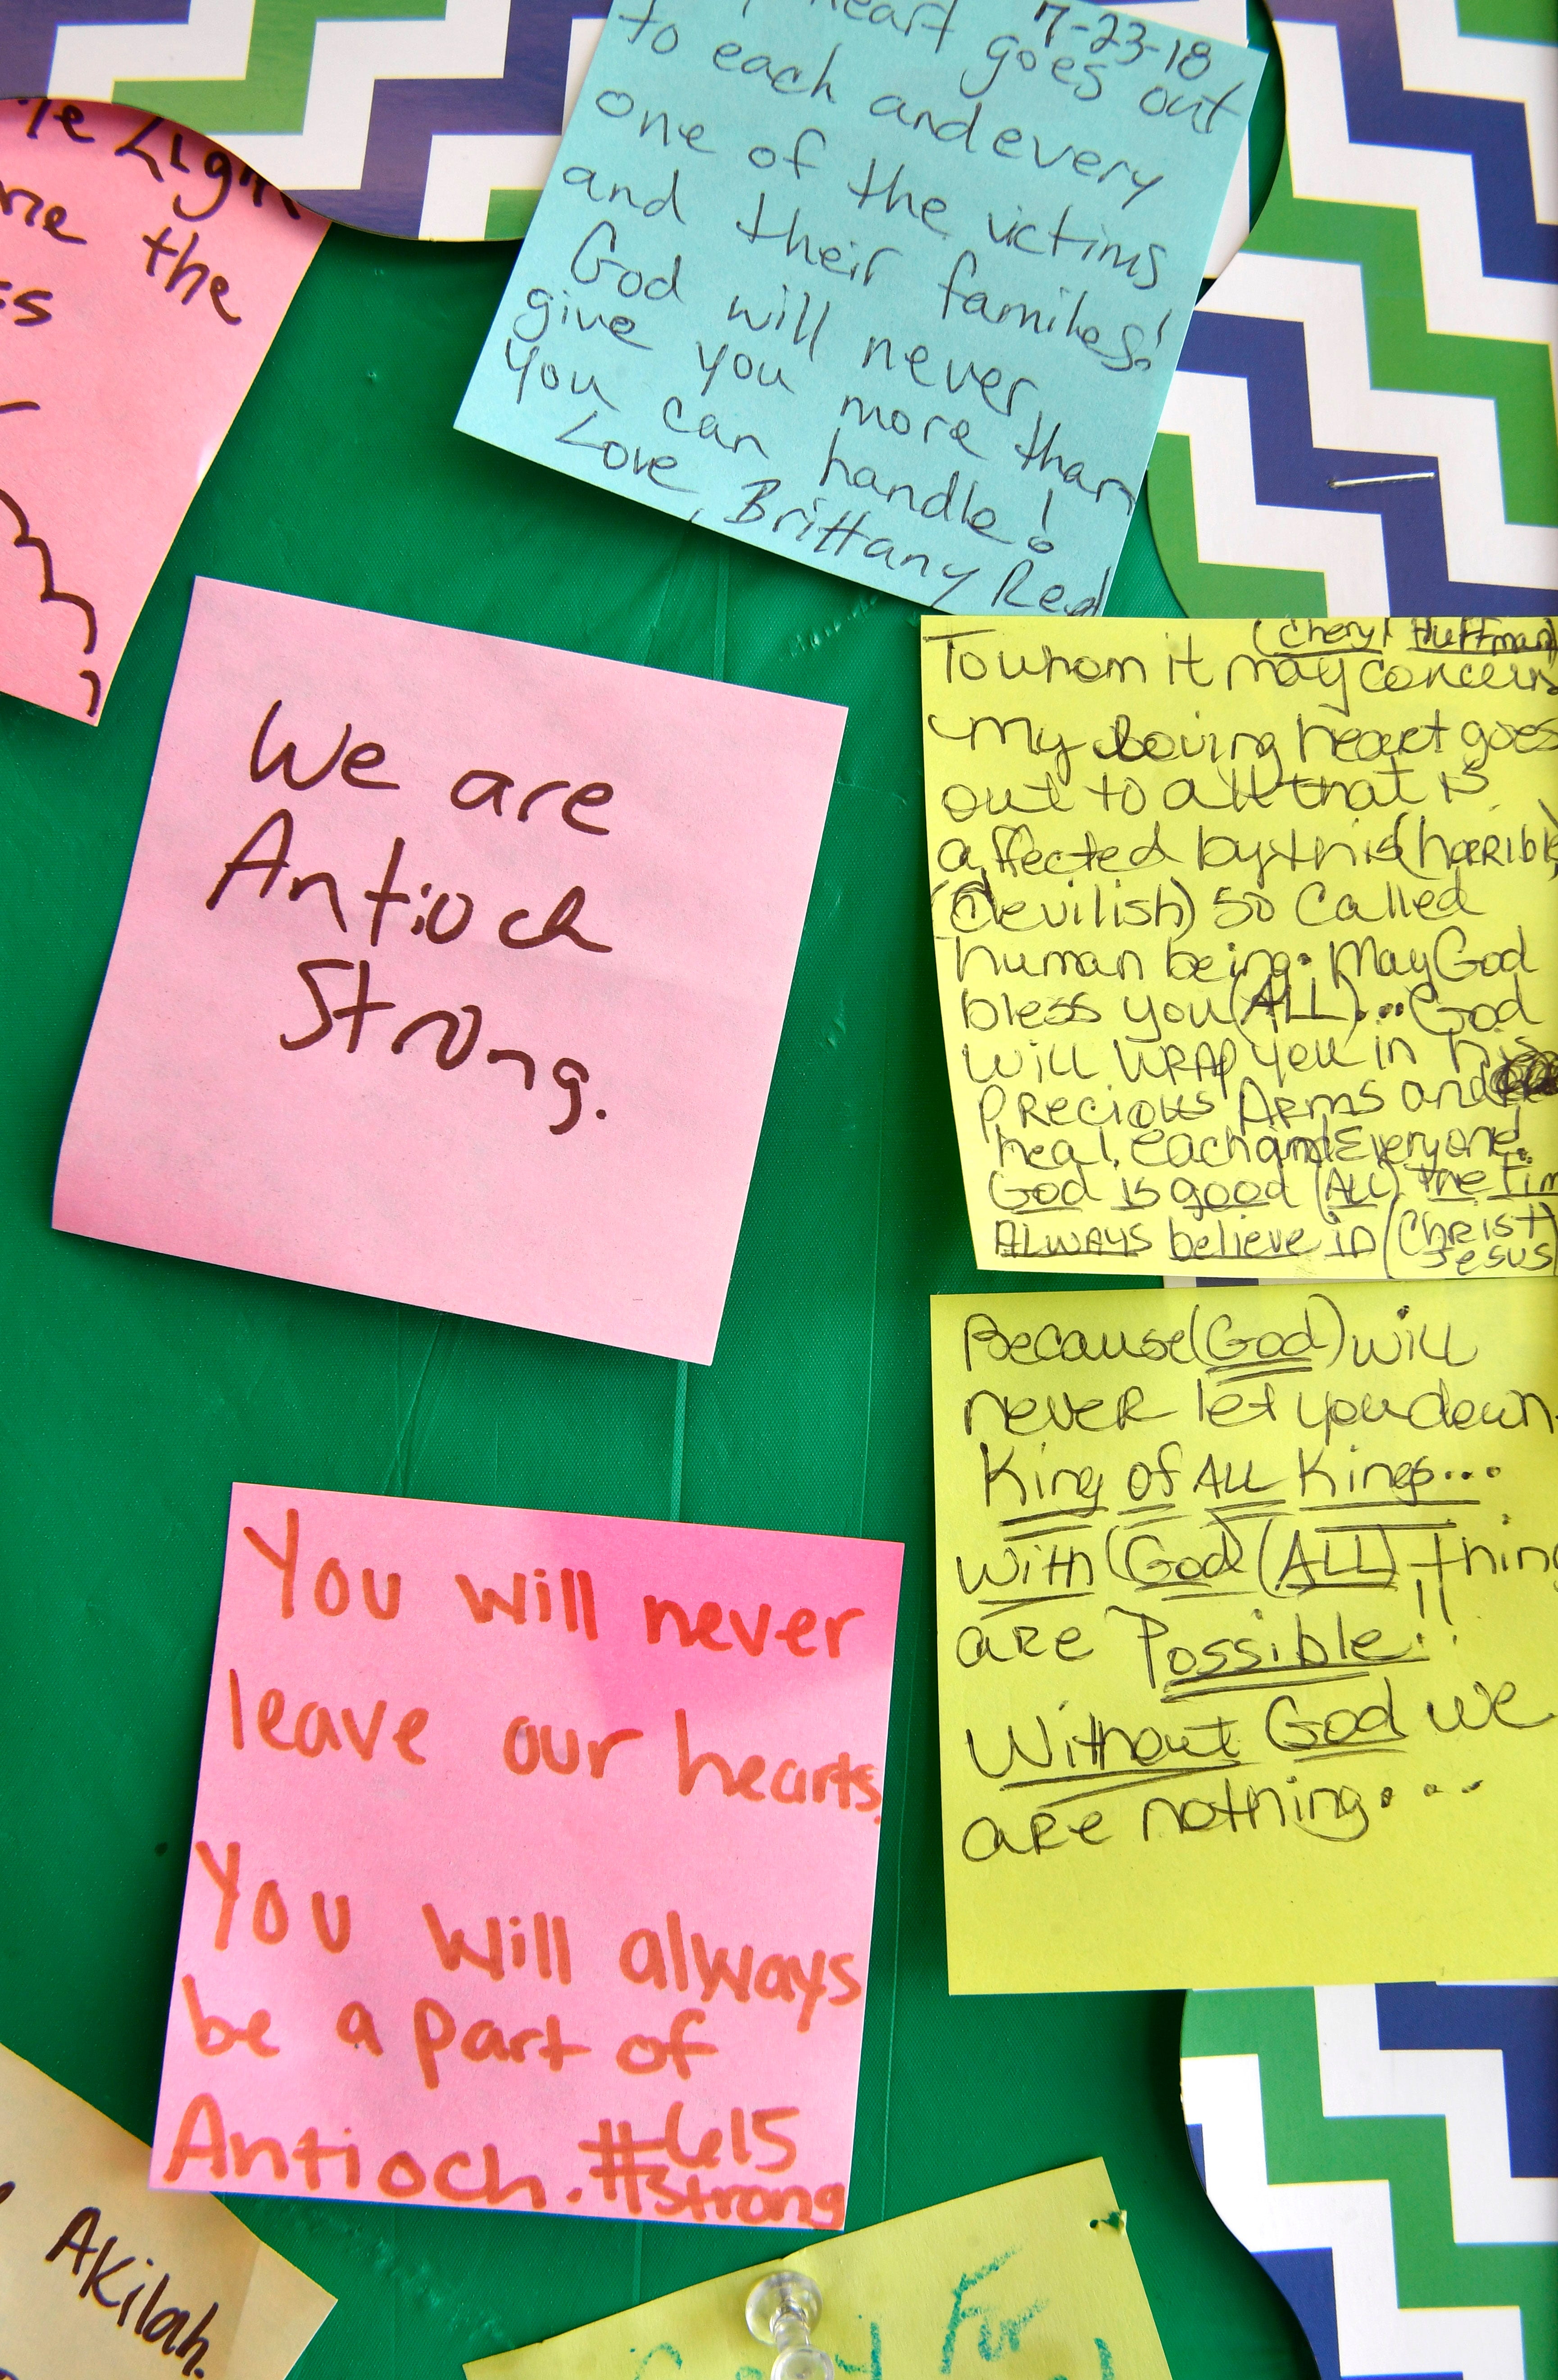 Community members left notes at the Waffle House in support of the victims and survivors in the weeks after the shooting.